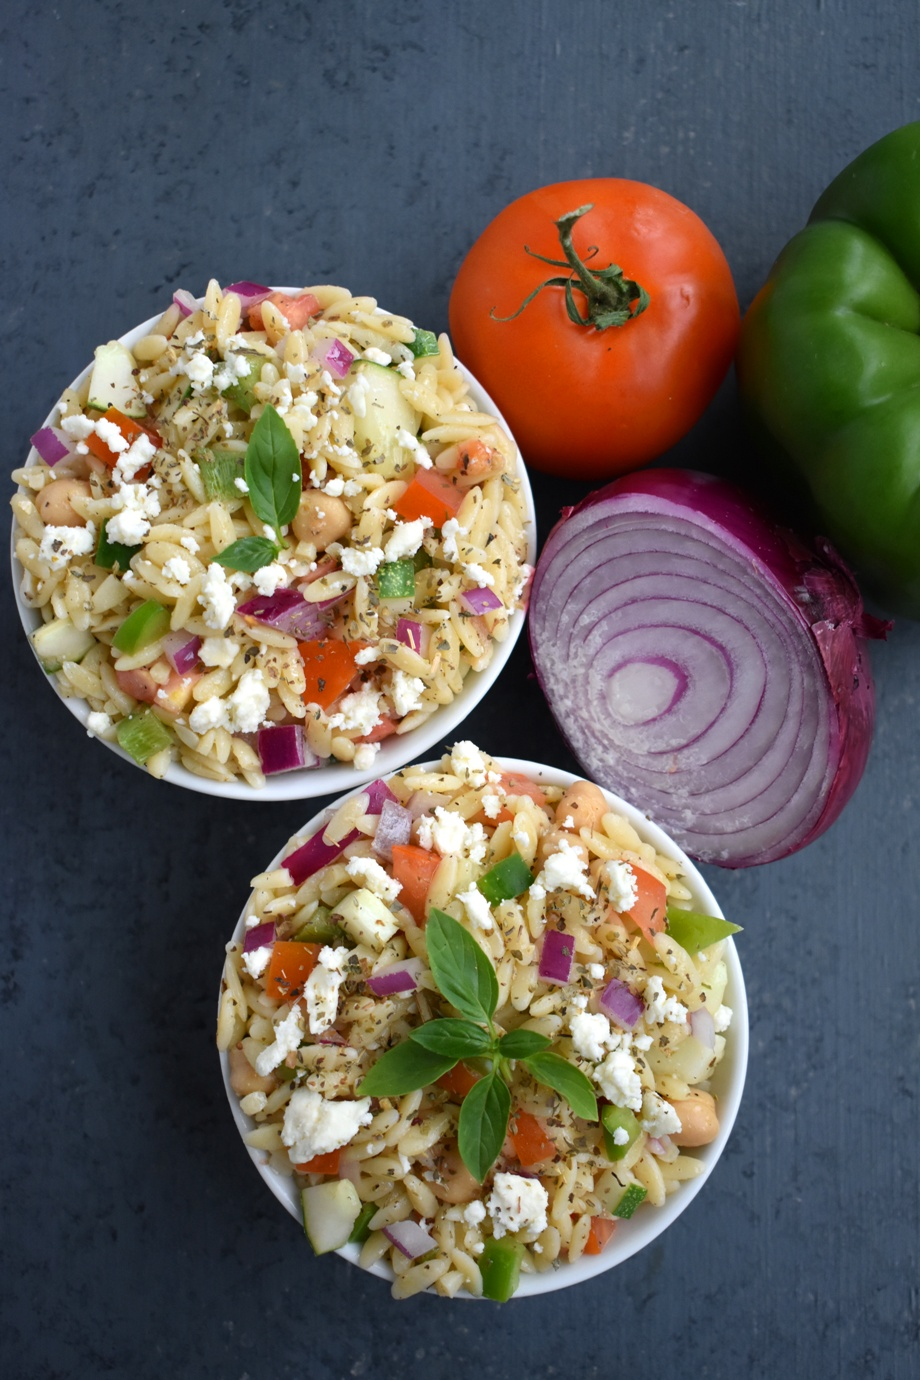 Greek Orzo Pasta Salad is an easy filling salad loaded with tomatoes, feta cheese, cucumbers, orzo pasta, garbanzo beans, a Greek vinaigrette and more! Perfect for entertaining and meal prep. www.nutritionistreviews.com